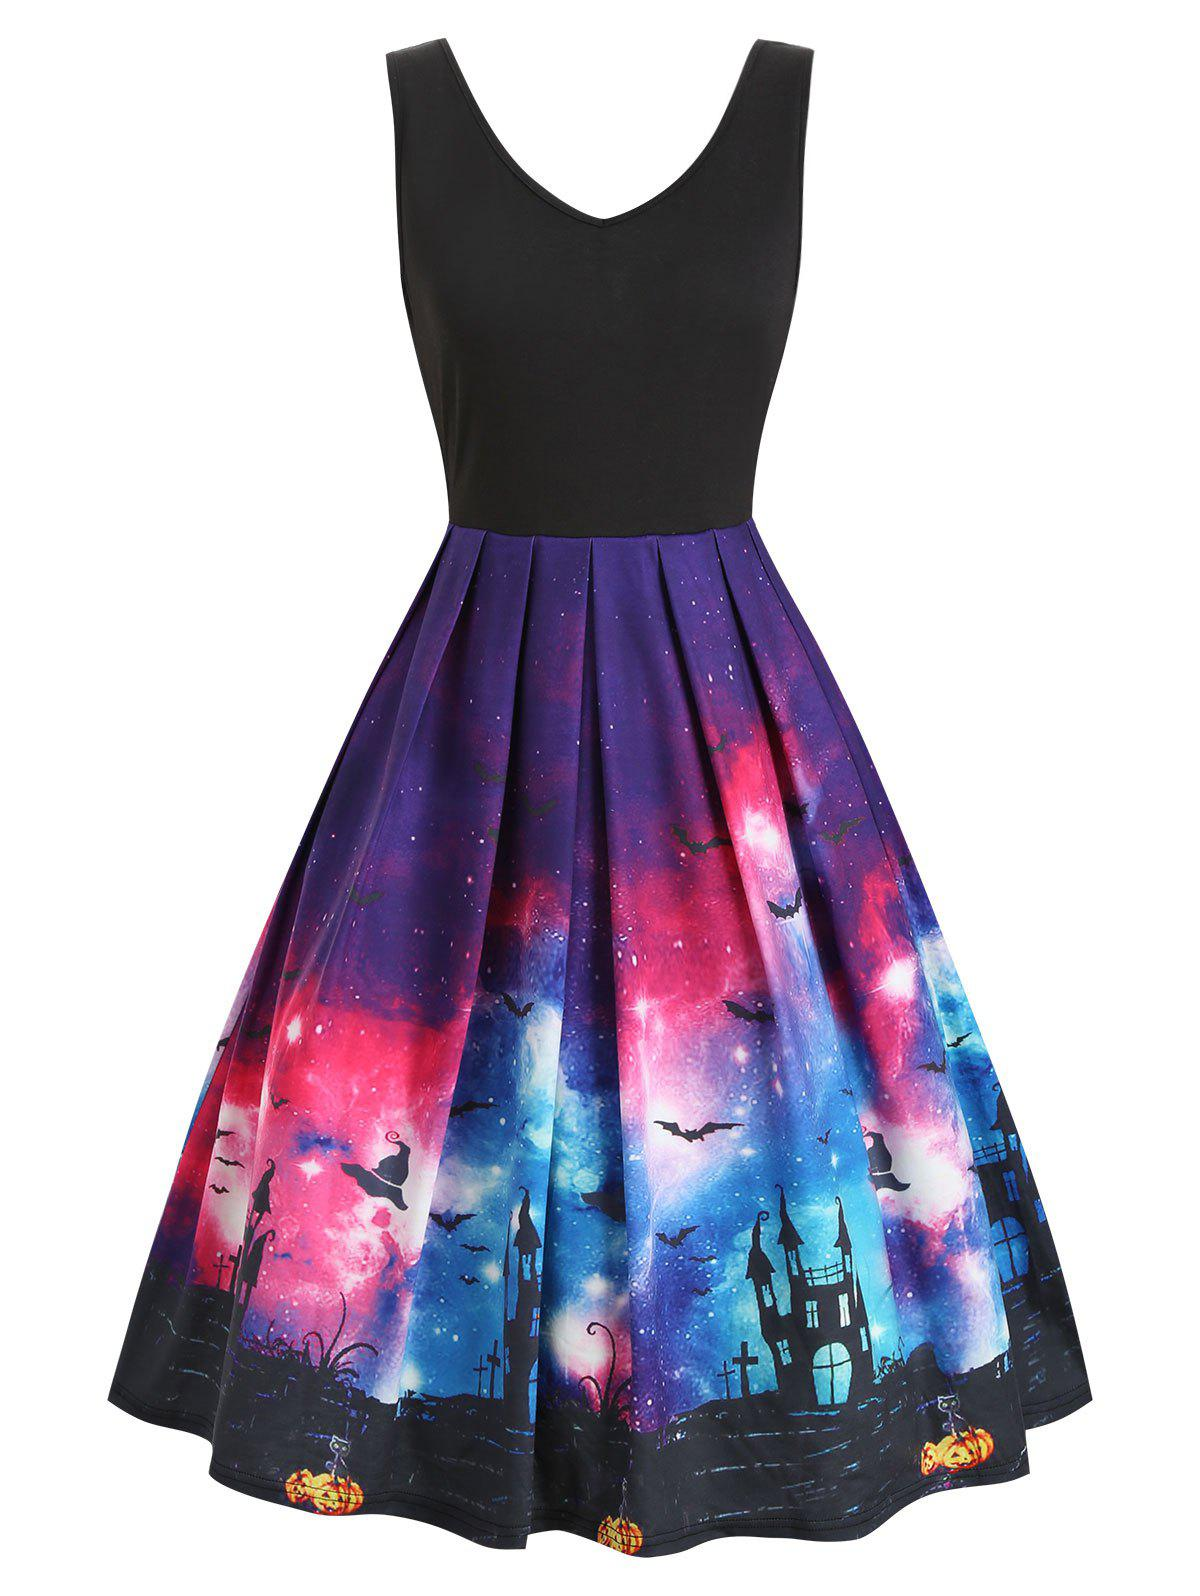 Galaxy Bat Graphic Sleeveless Halloween Dress